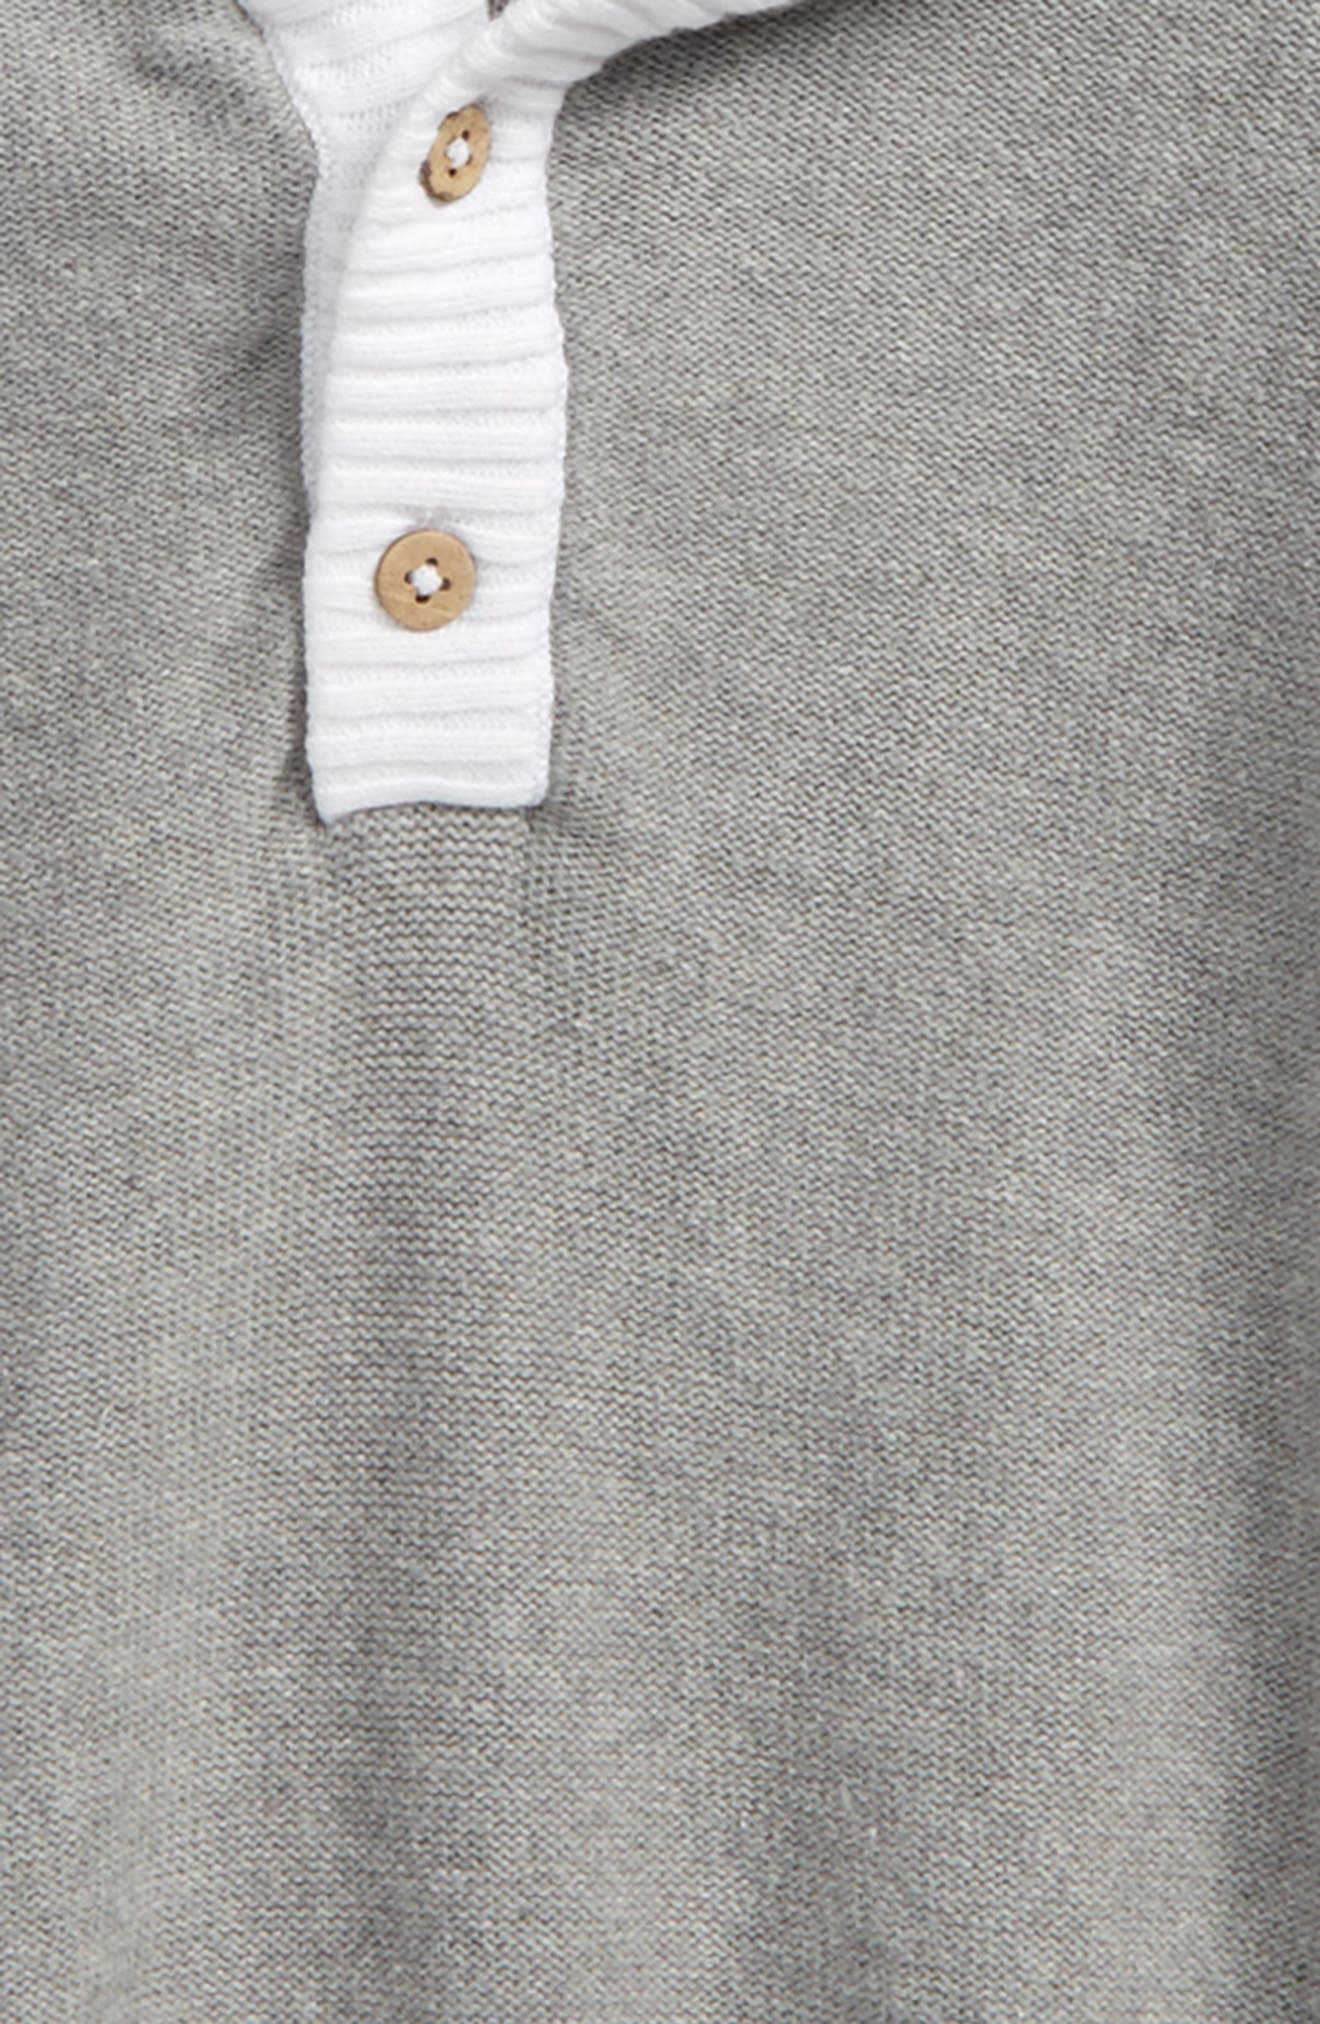 Alternate Image 2  - Burt's Bees Baby Organic Cotton Knit Hoodie (Toddler Boys & Little Boys)